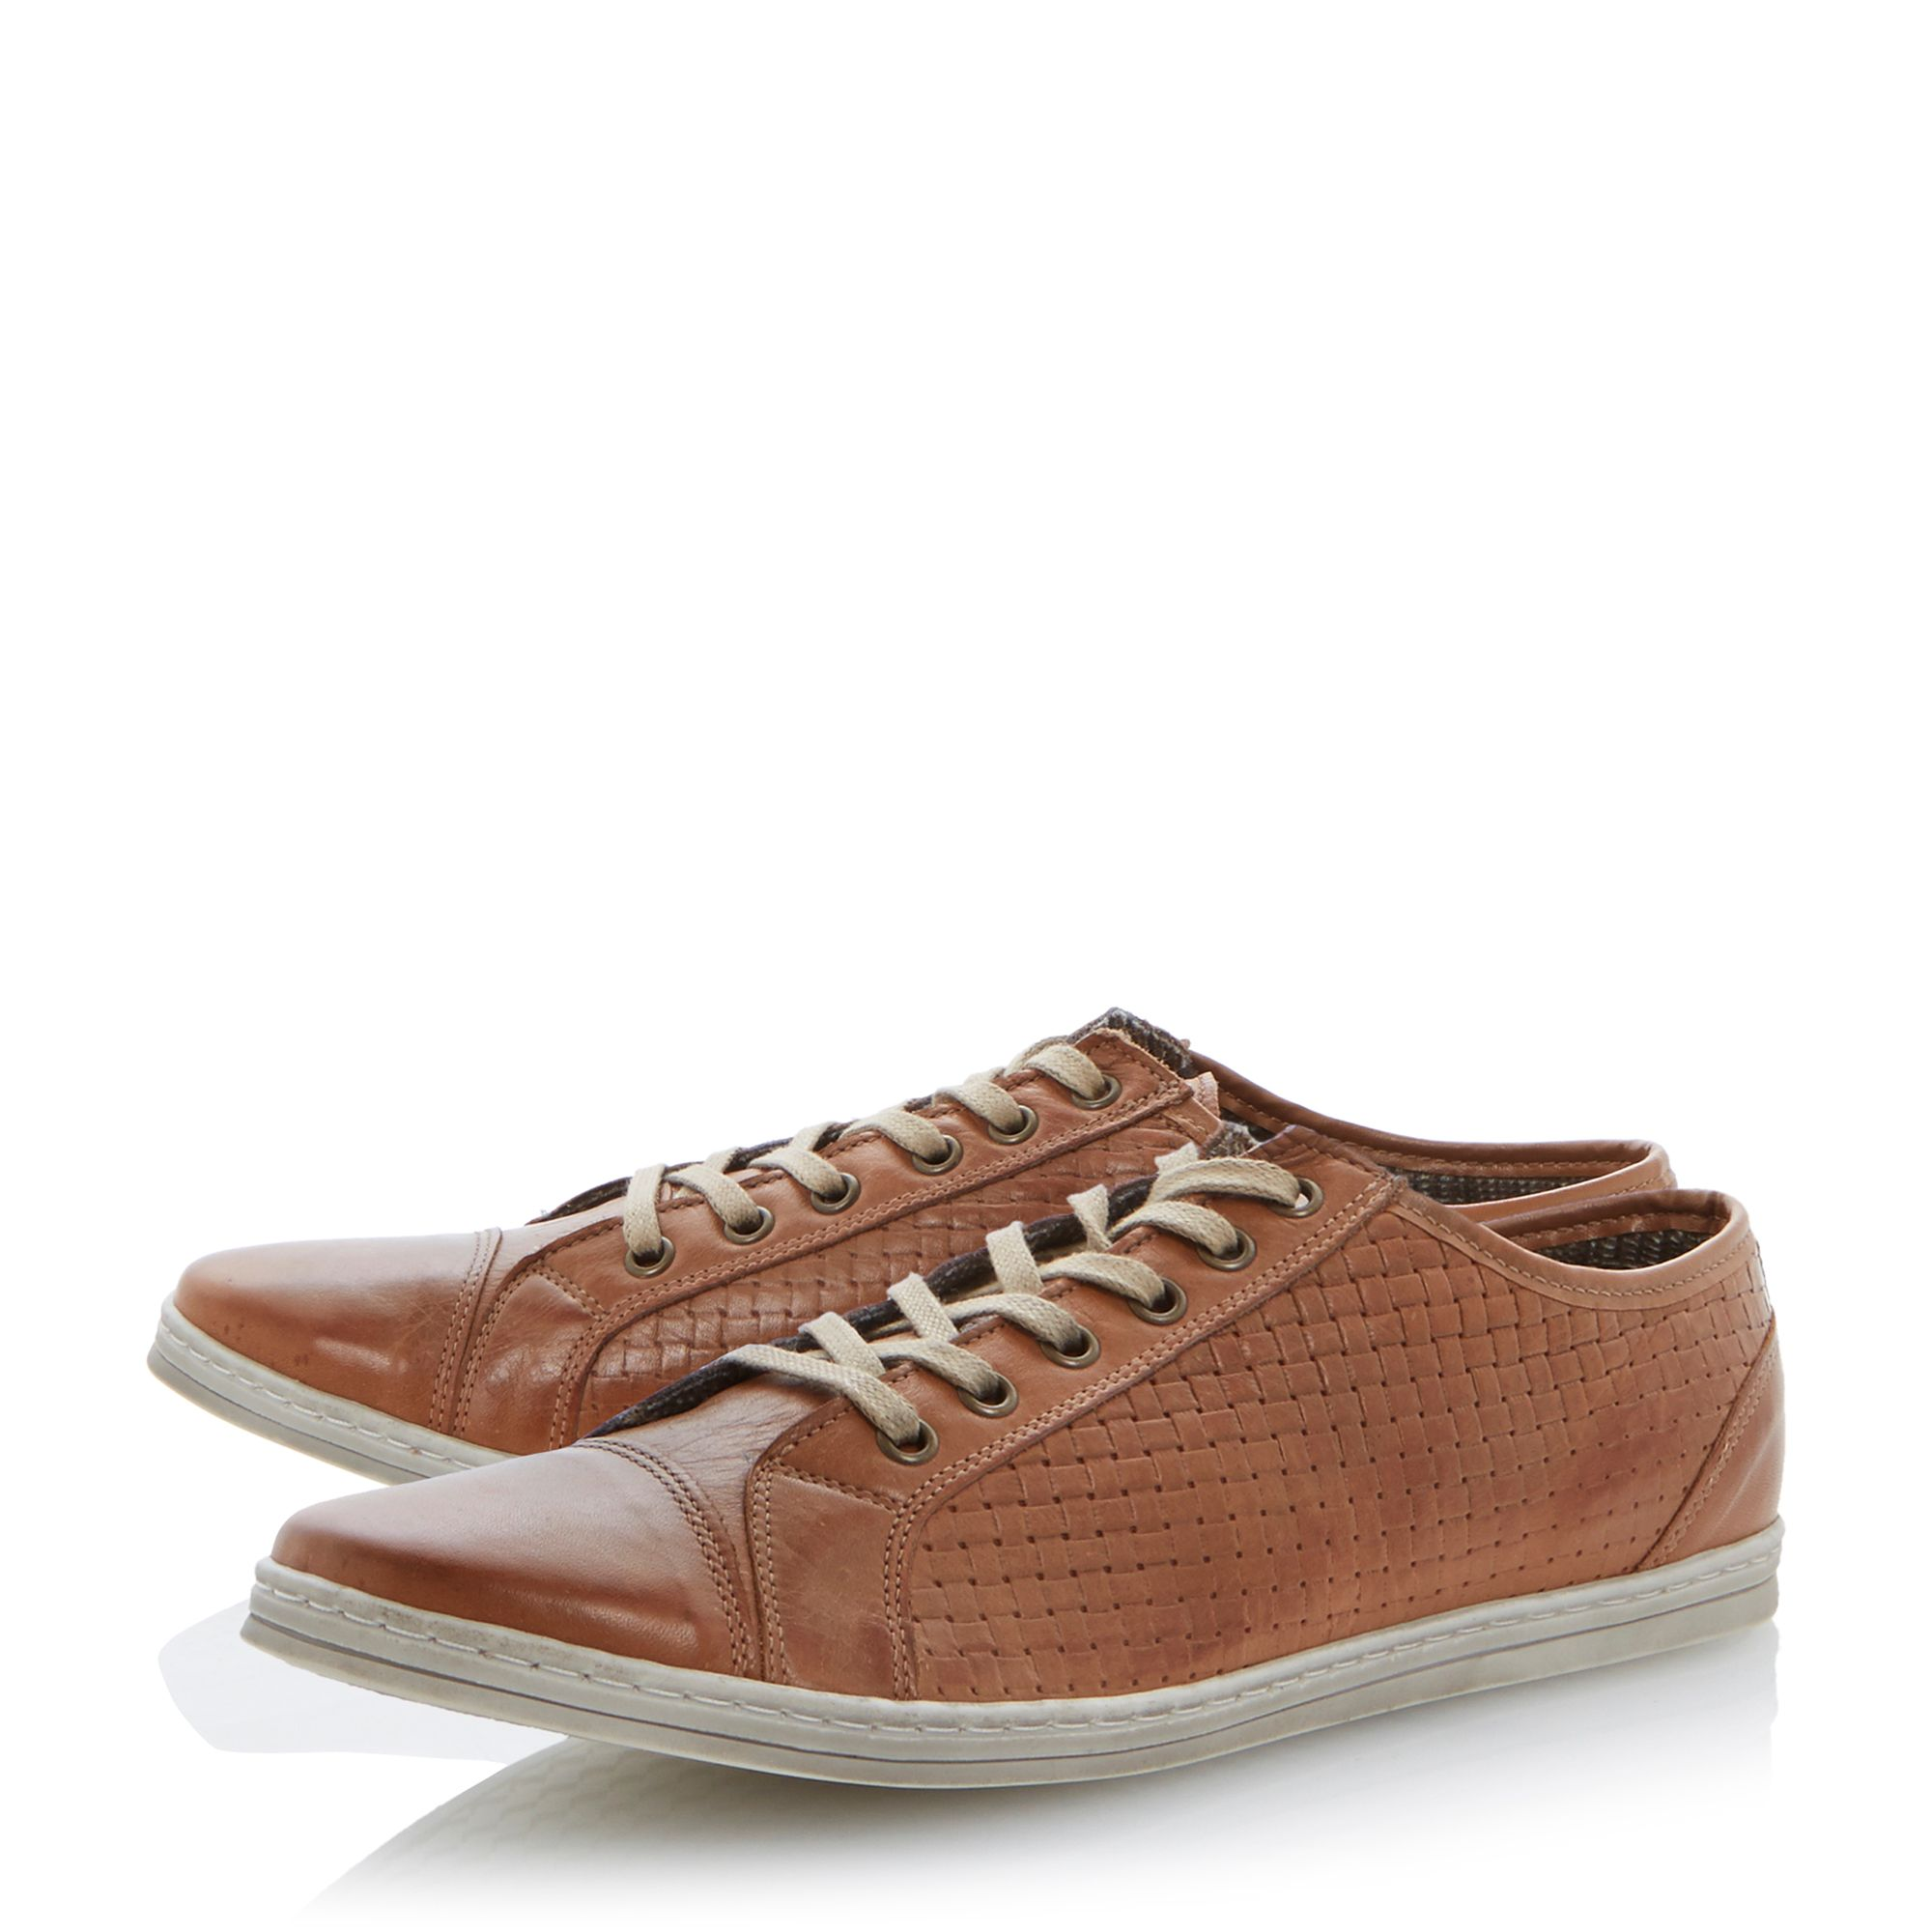 Trickster lace up side weave trainers